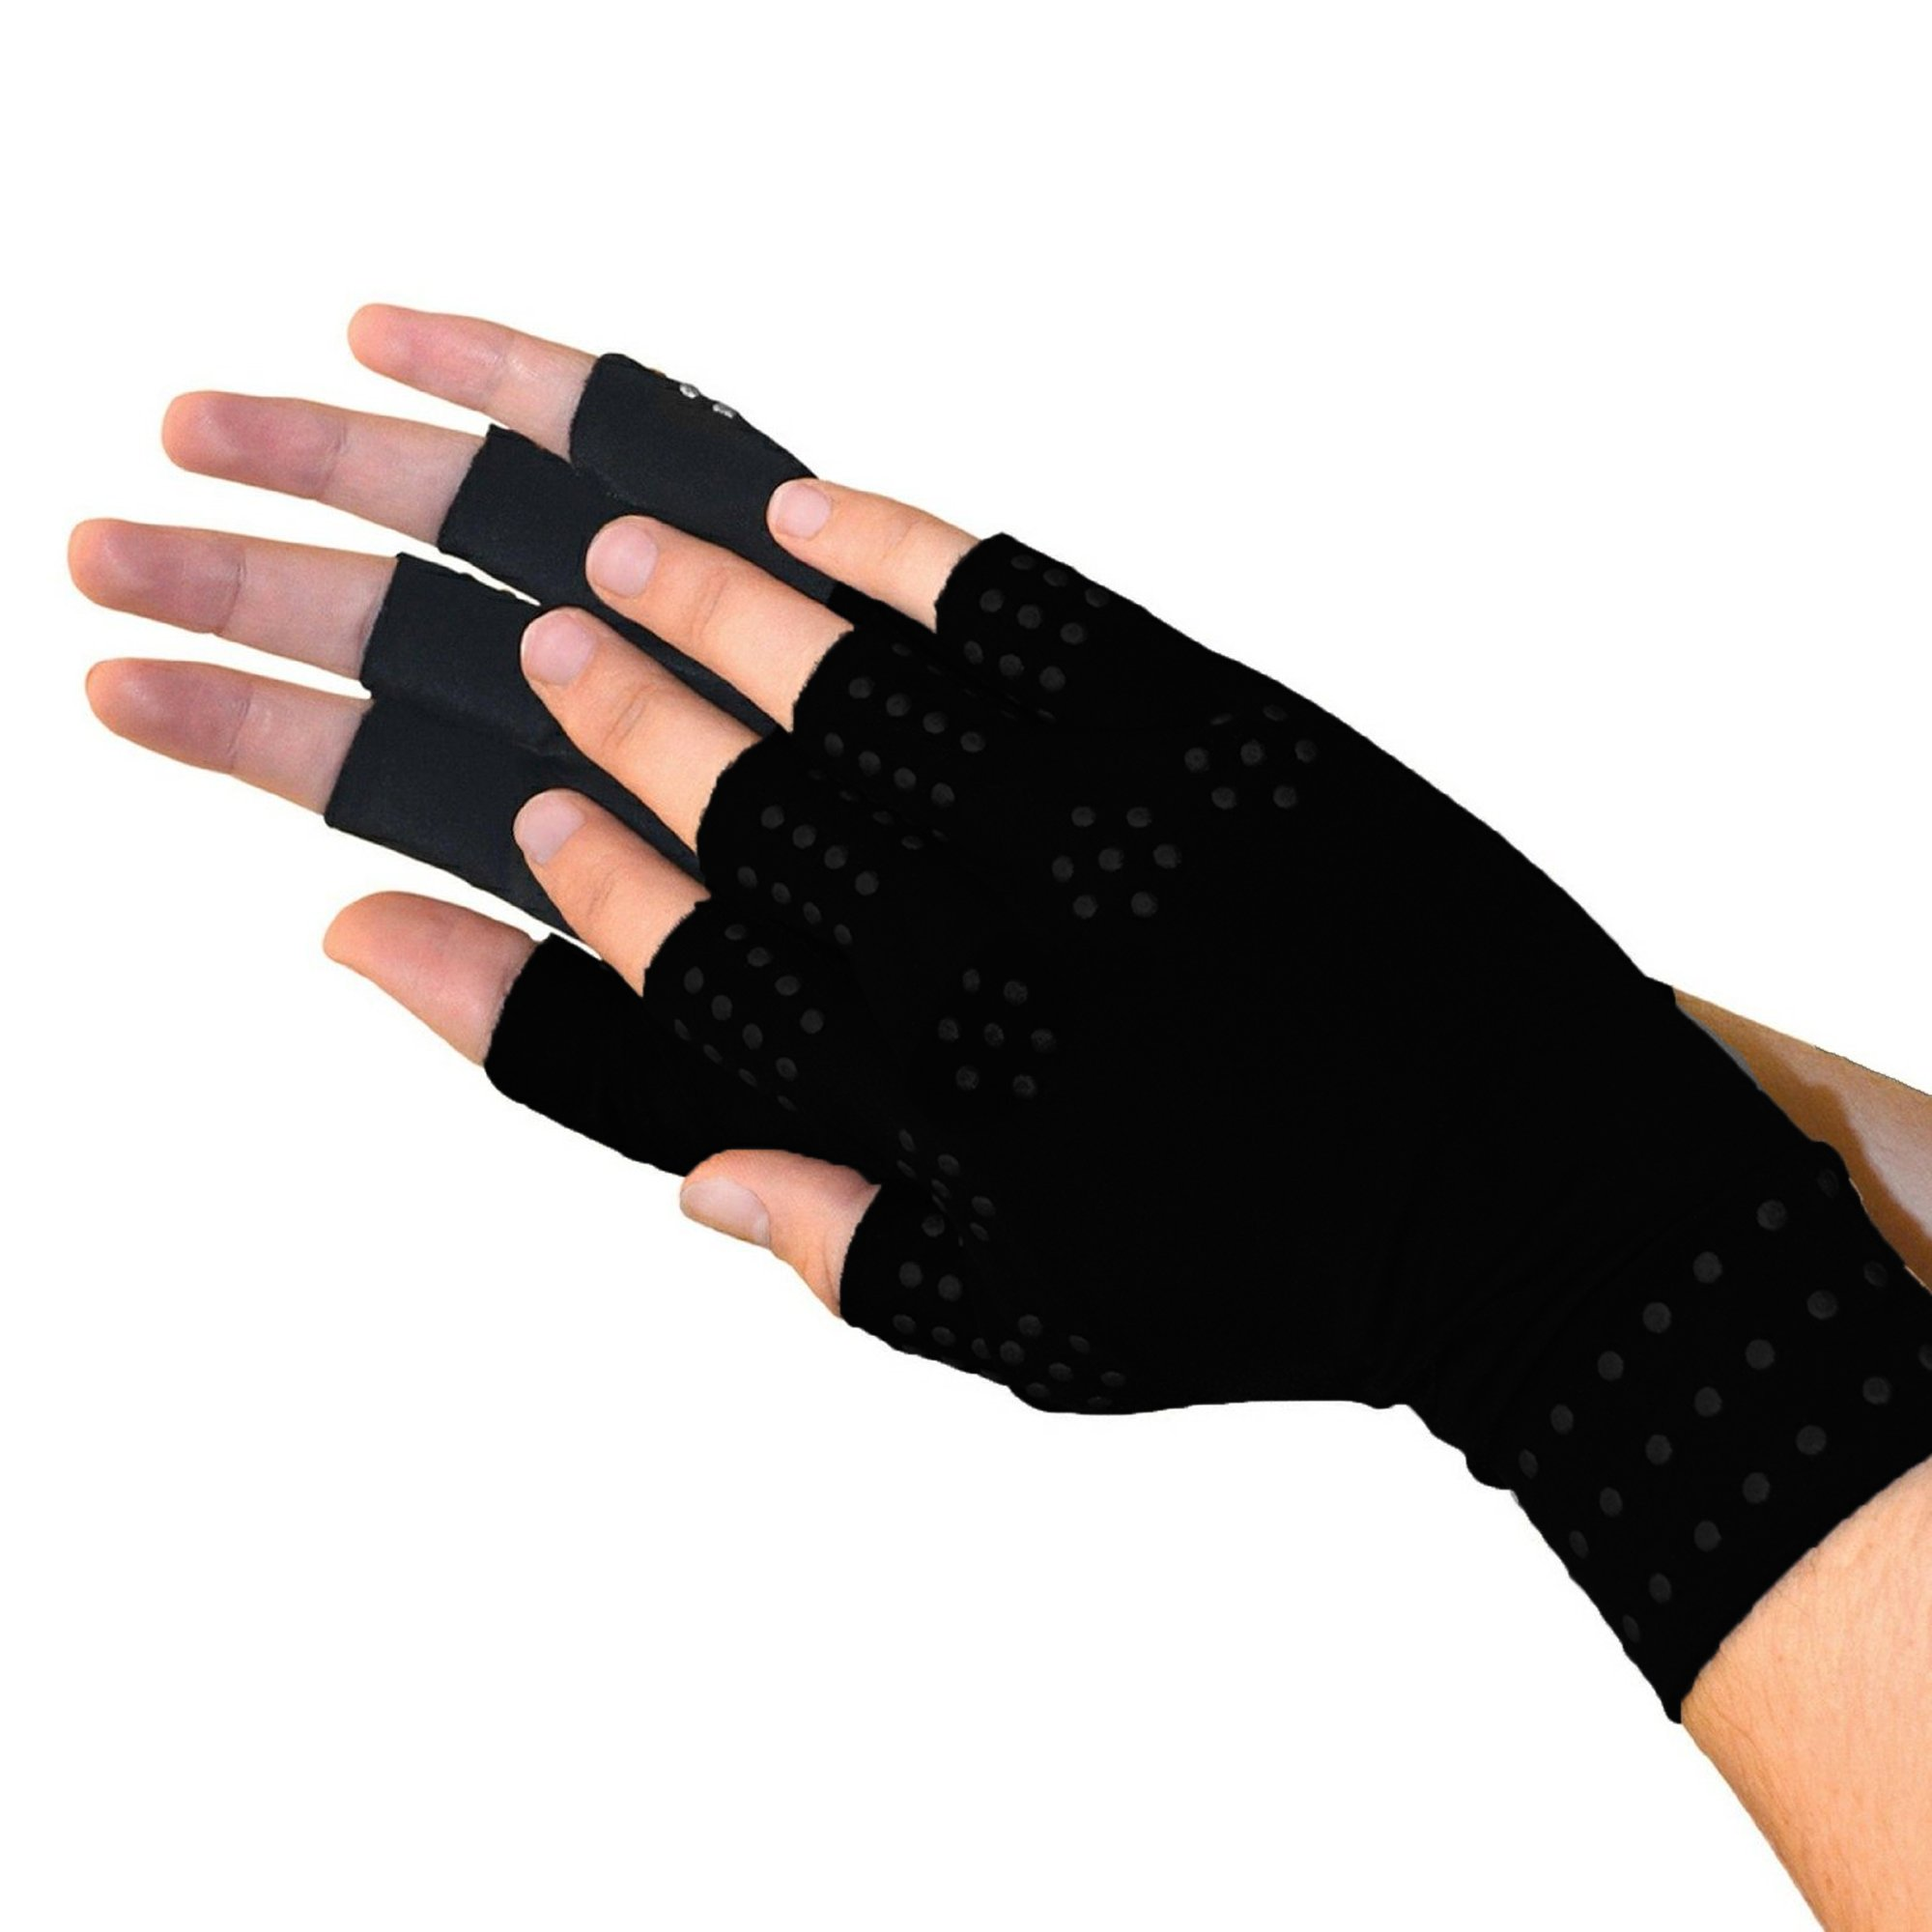 Magnetic Anti-Arthritis Health Therapy Pain Relief Gloves - Black